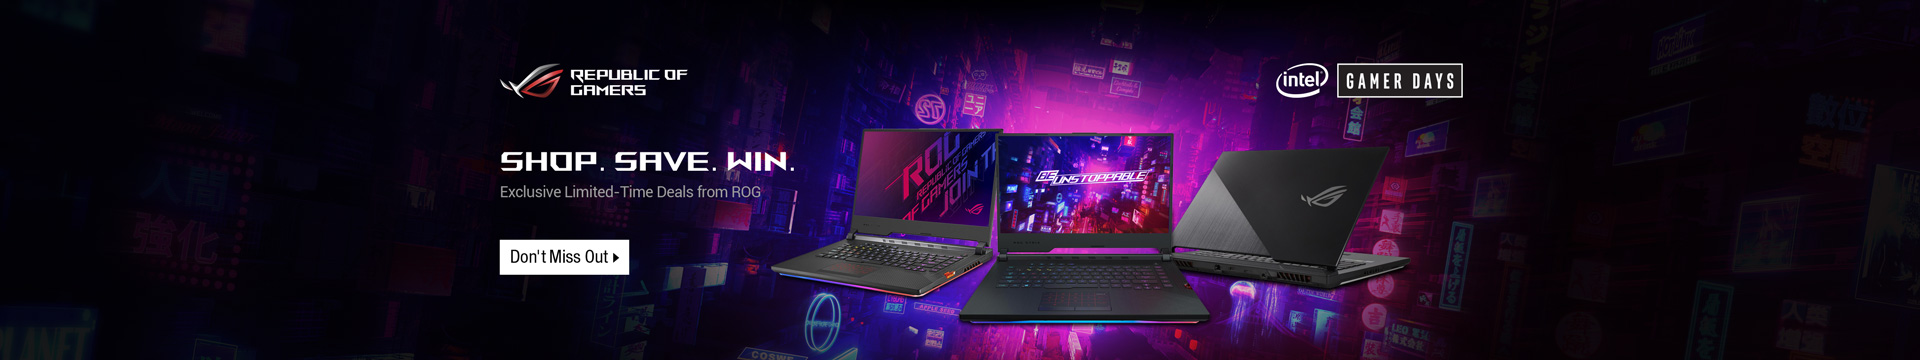 Gaming Laptops   MSI, ASUS, Acer and More - Newegg com